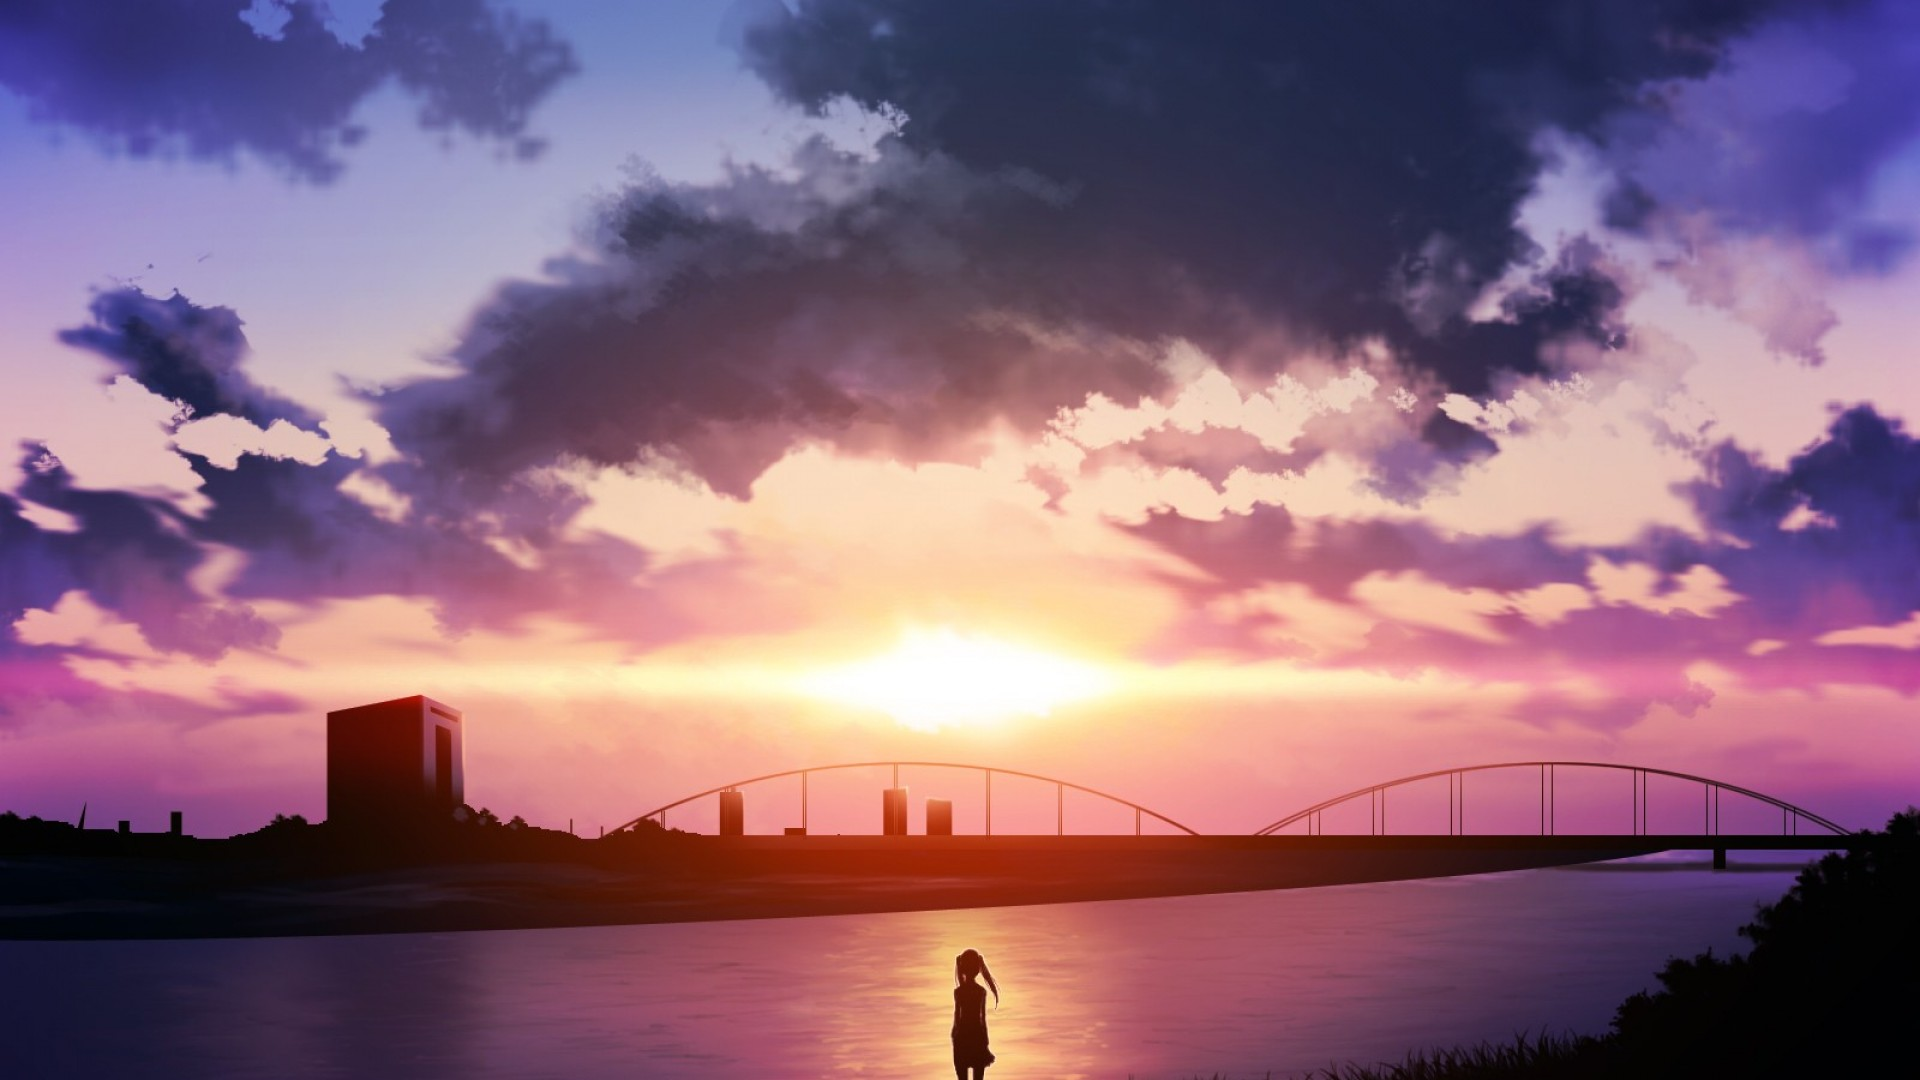 Anime Scenery Wallpapers - Obaasima com